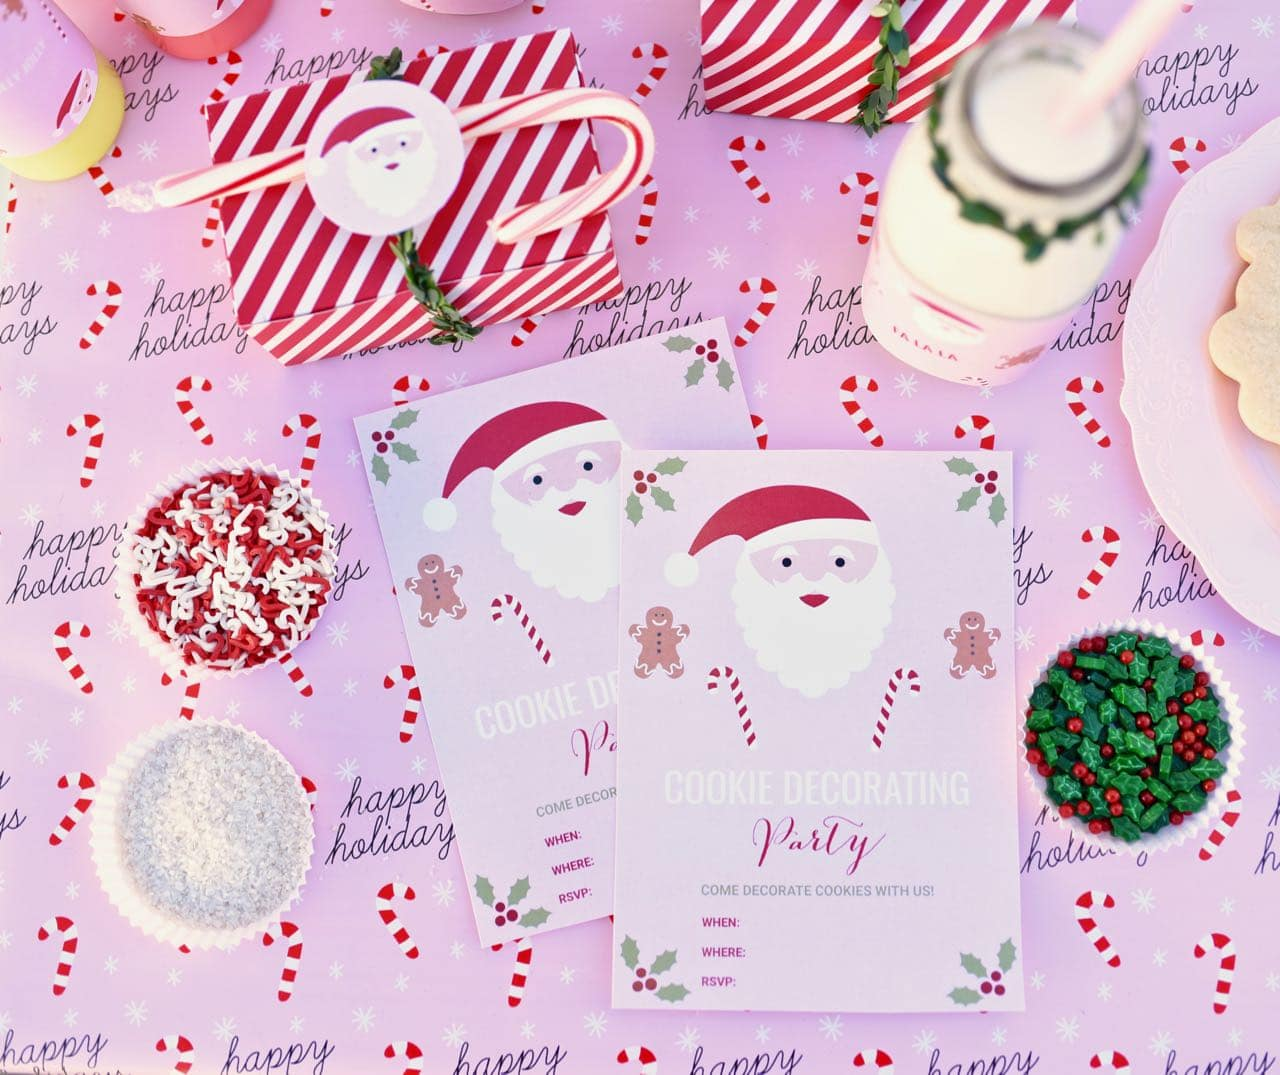 Christmas Cookie Party Invite.How To Plan The Ultimate Christmas Cookie Decorating Party